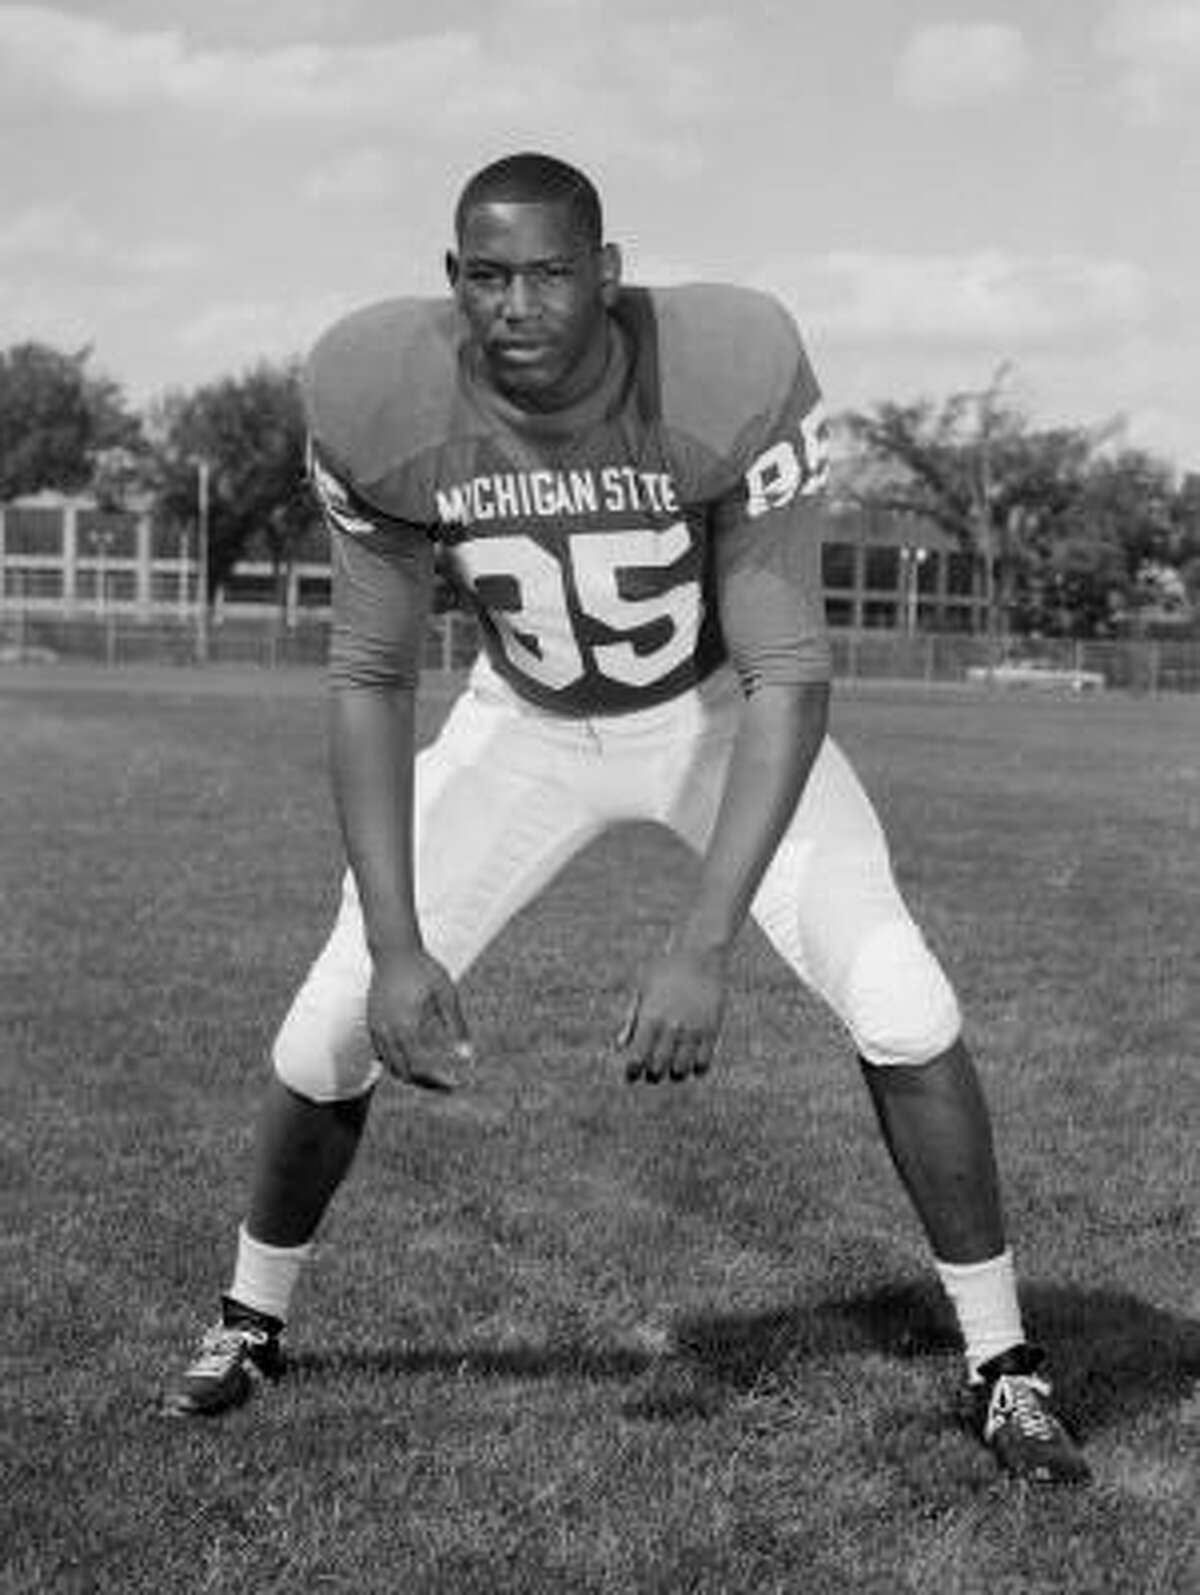 In a photo provided by Michigan State University, date not known, Michigan State football player Bubba Smith poses for a photo. The top overall pick in the 1967 draft after a sensational career at Michigan State, Smith spent five seasons with the Baltimore Colts and two seasons each with Oakland and Houston. He won the 1971 Super Bowl with the Colts.